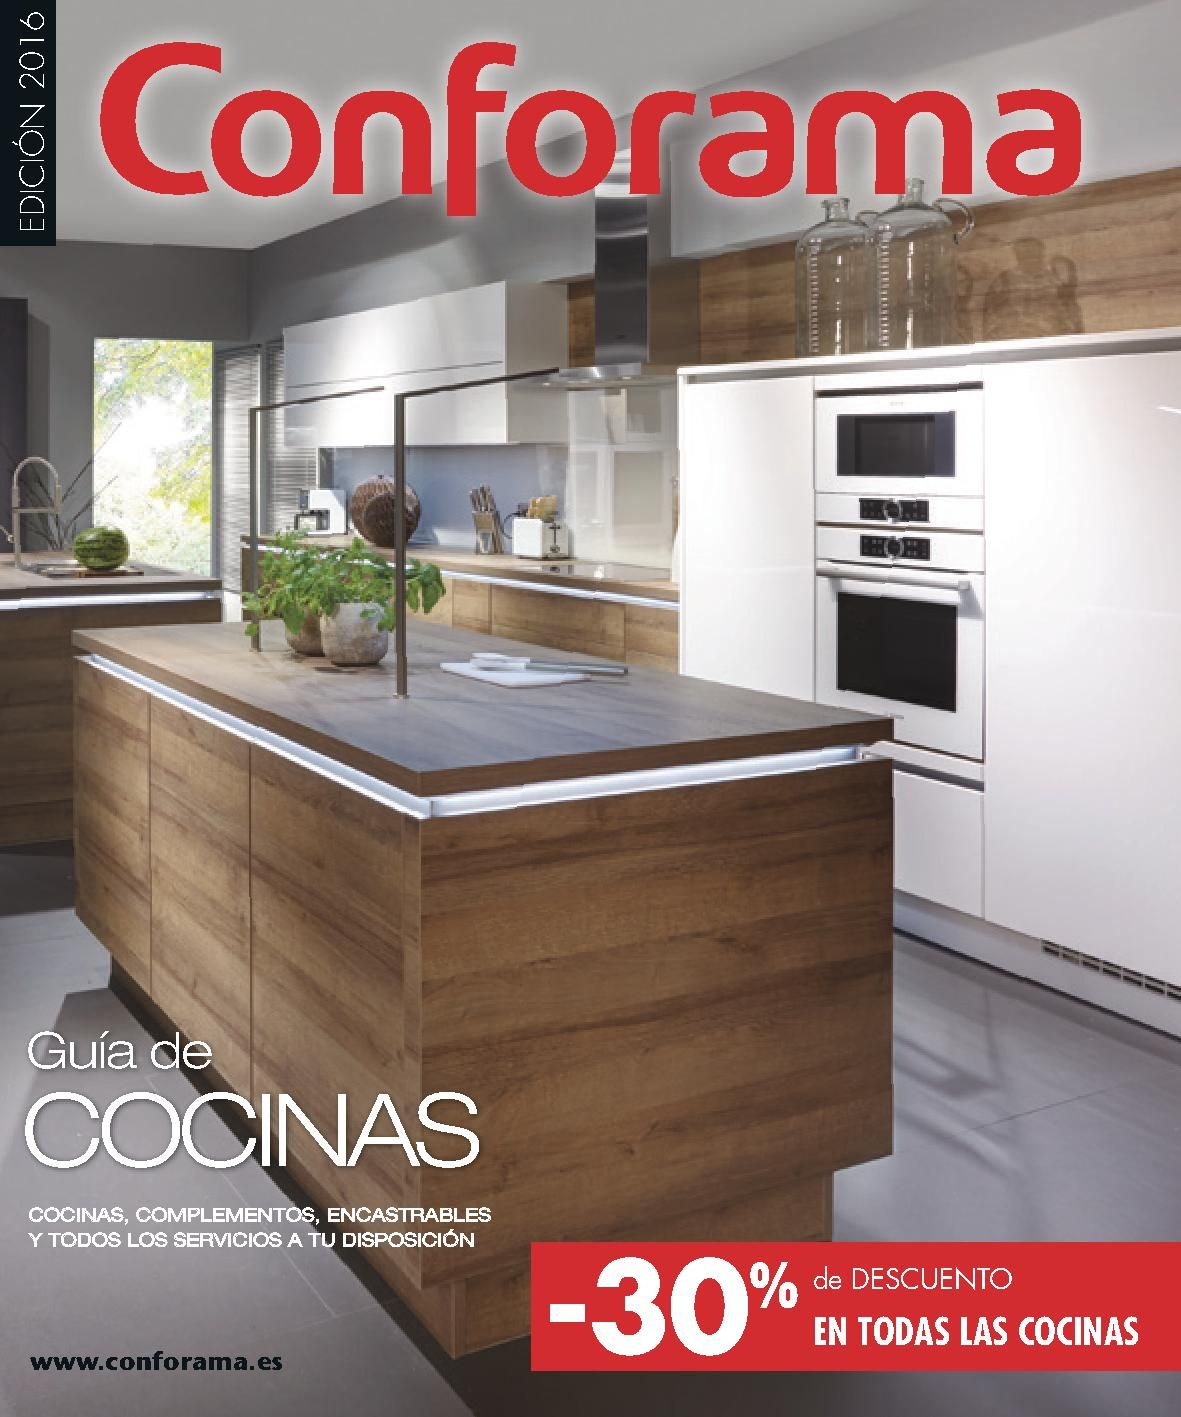 Gu a conforama cocinas 04 2016 1 cocina pinterest for Catalogo cocinas 2016